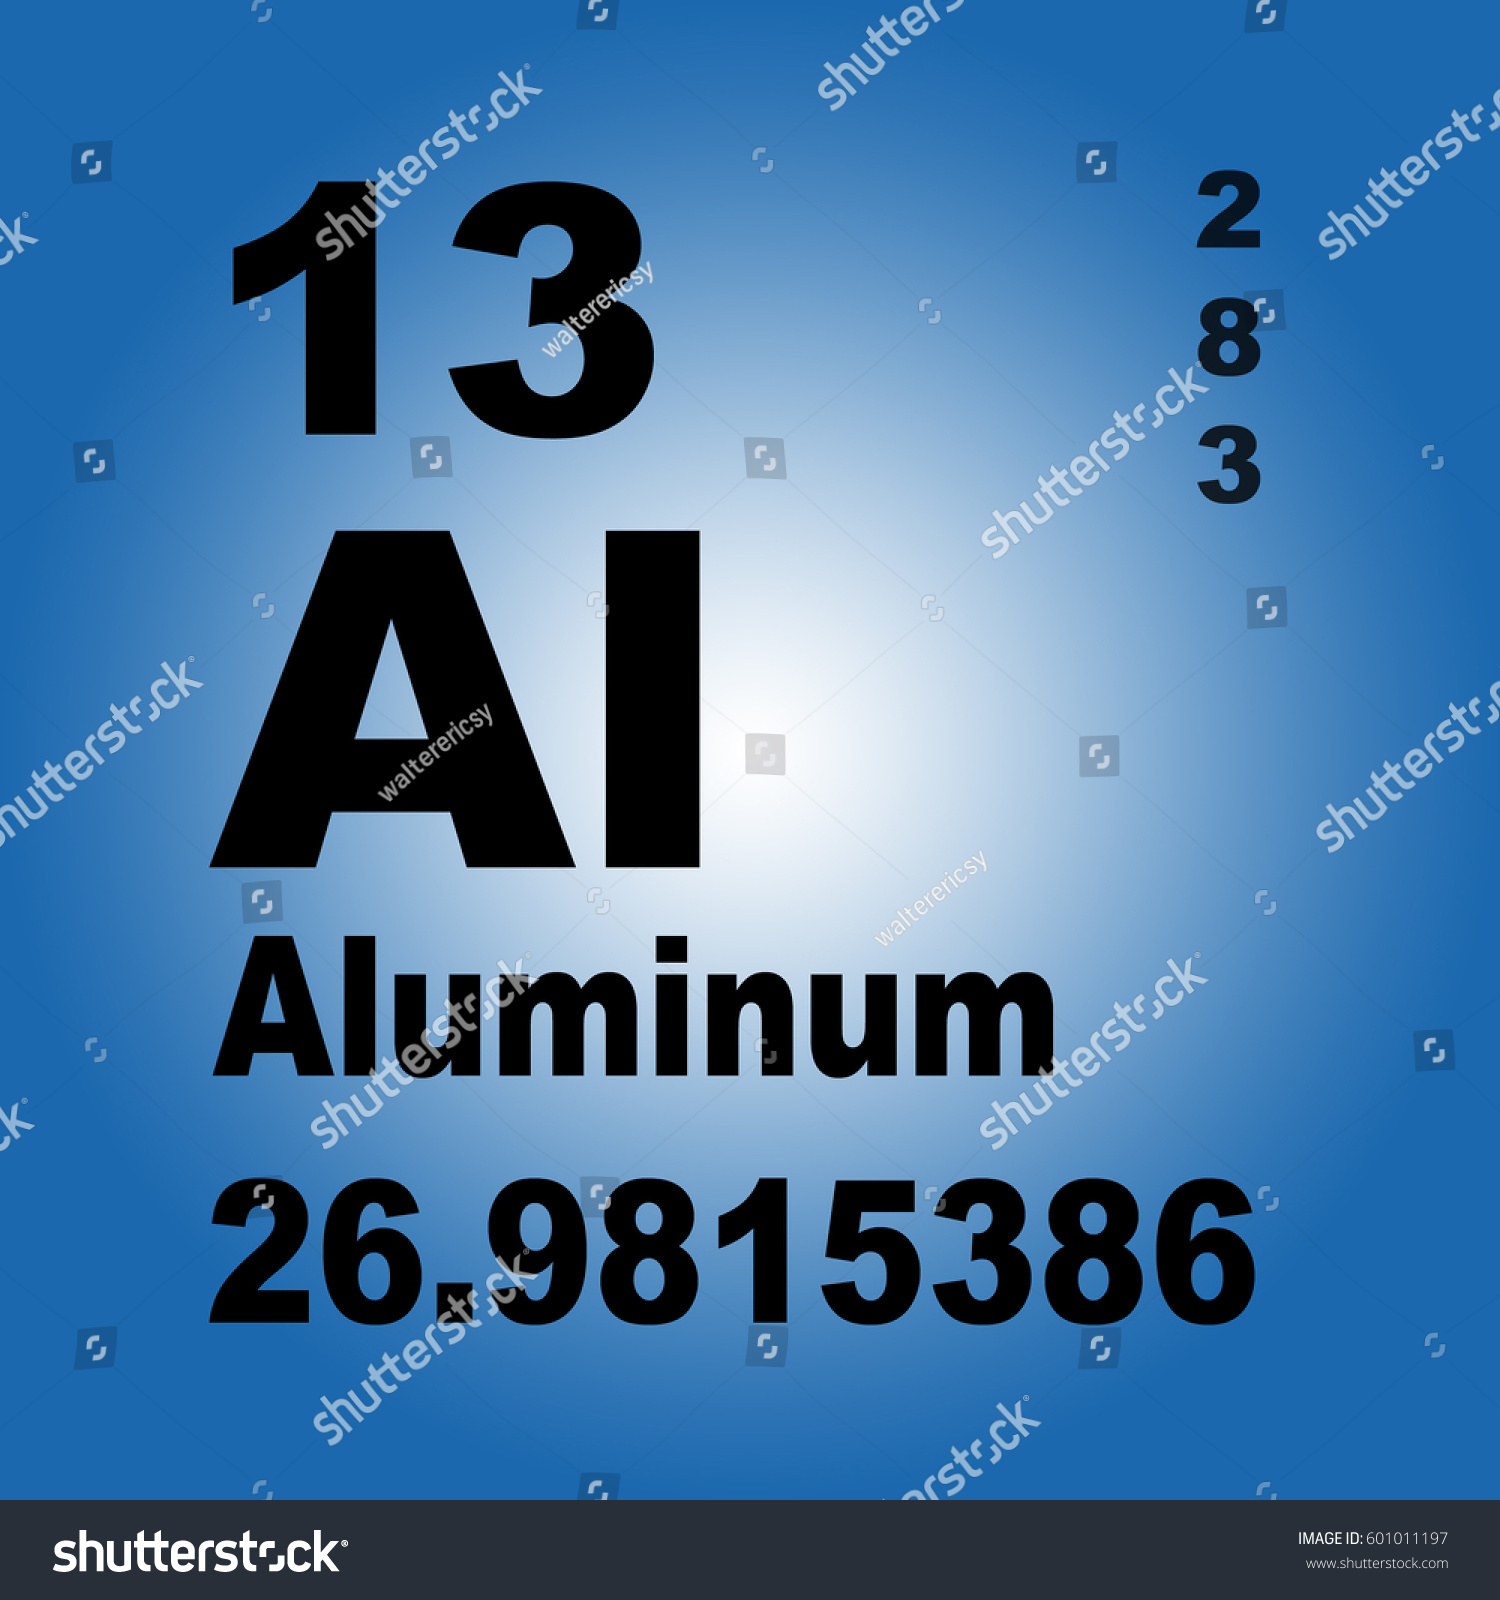 Aluminum periodic table elements stock illustration 601011197 aluminum periodic table of elements gamestrikefo Image collections